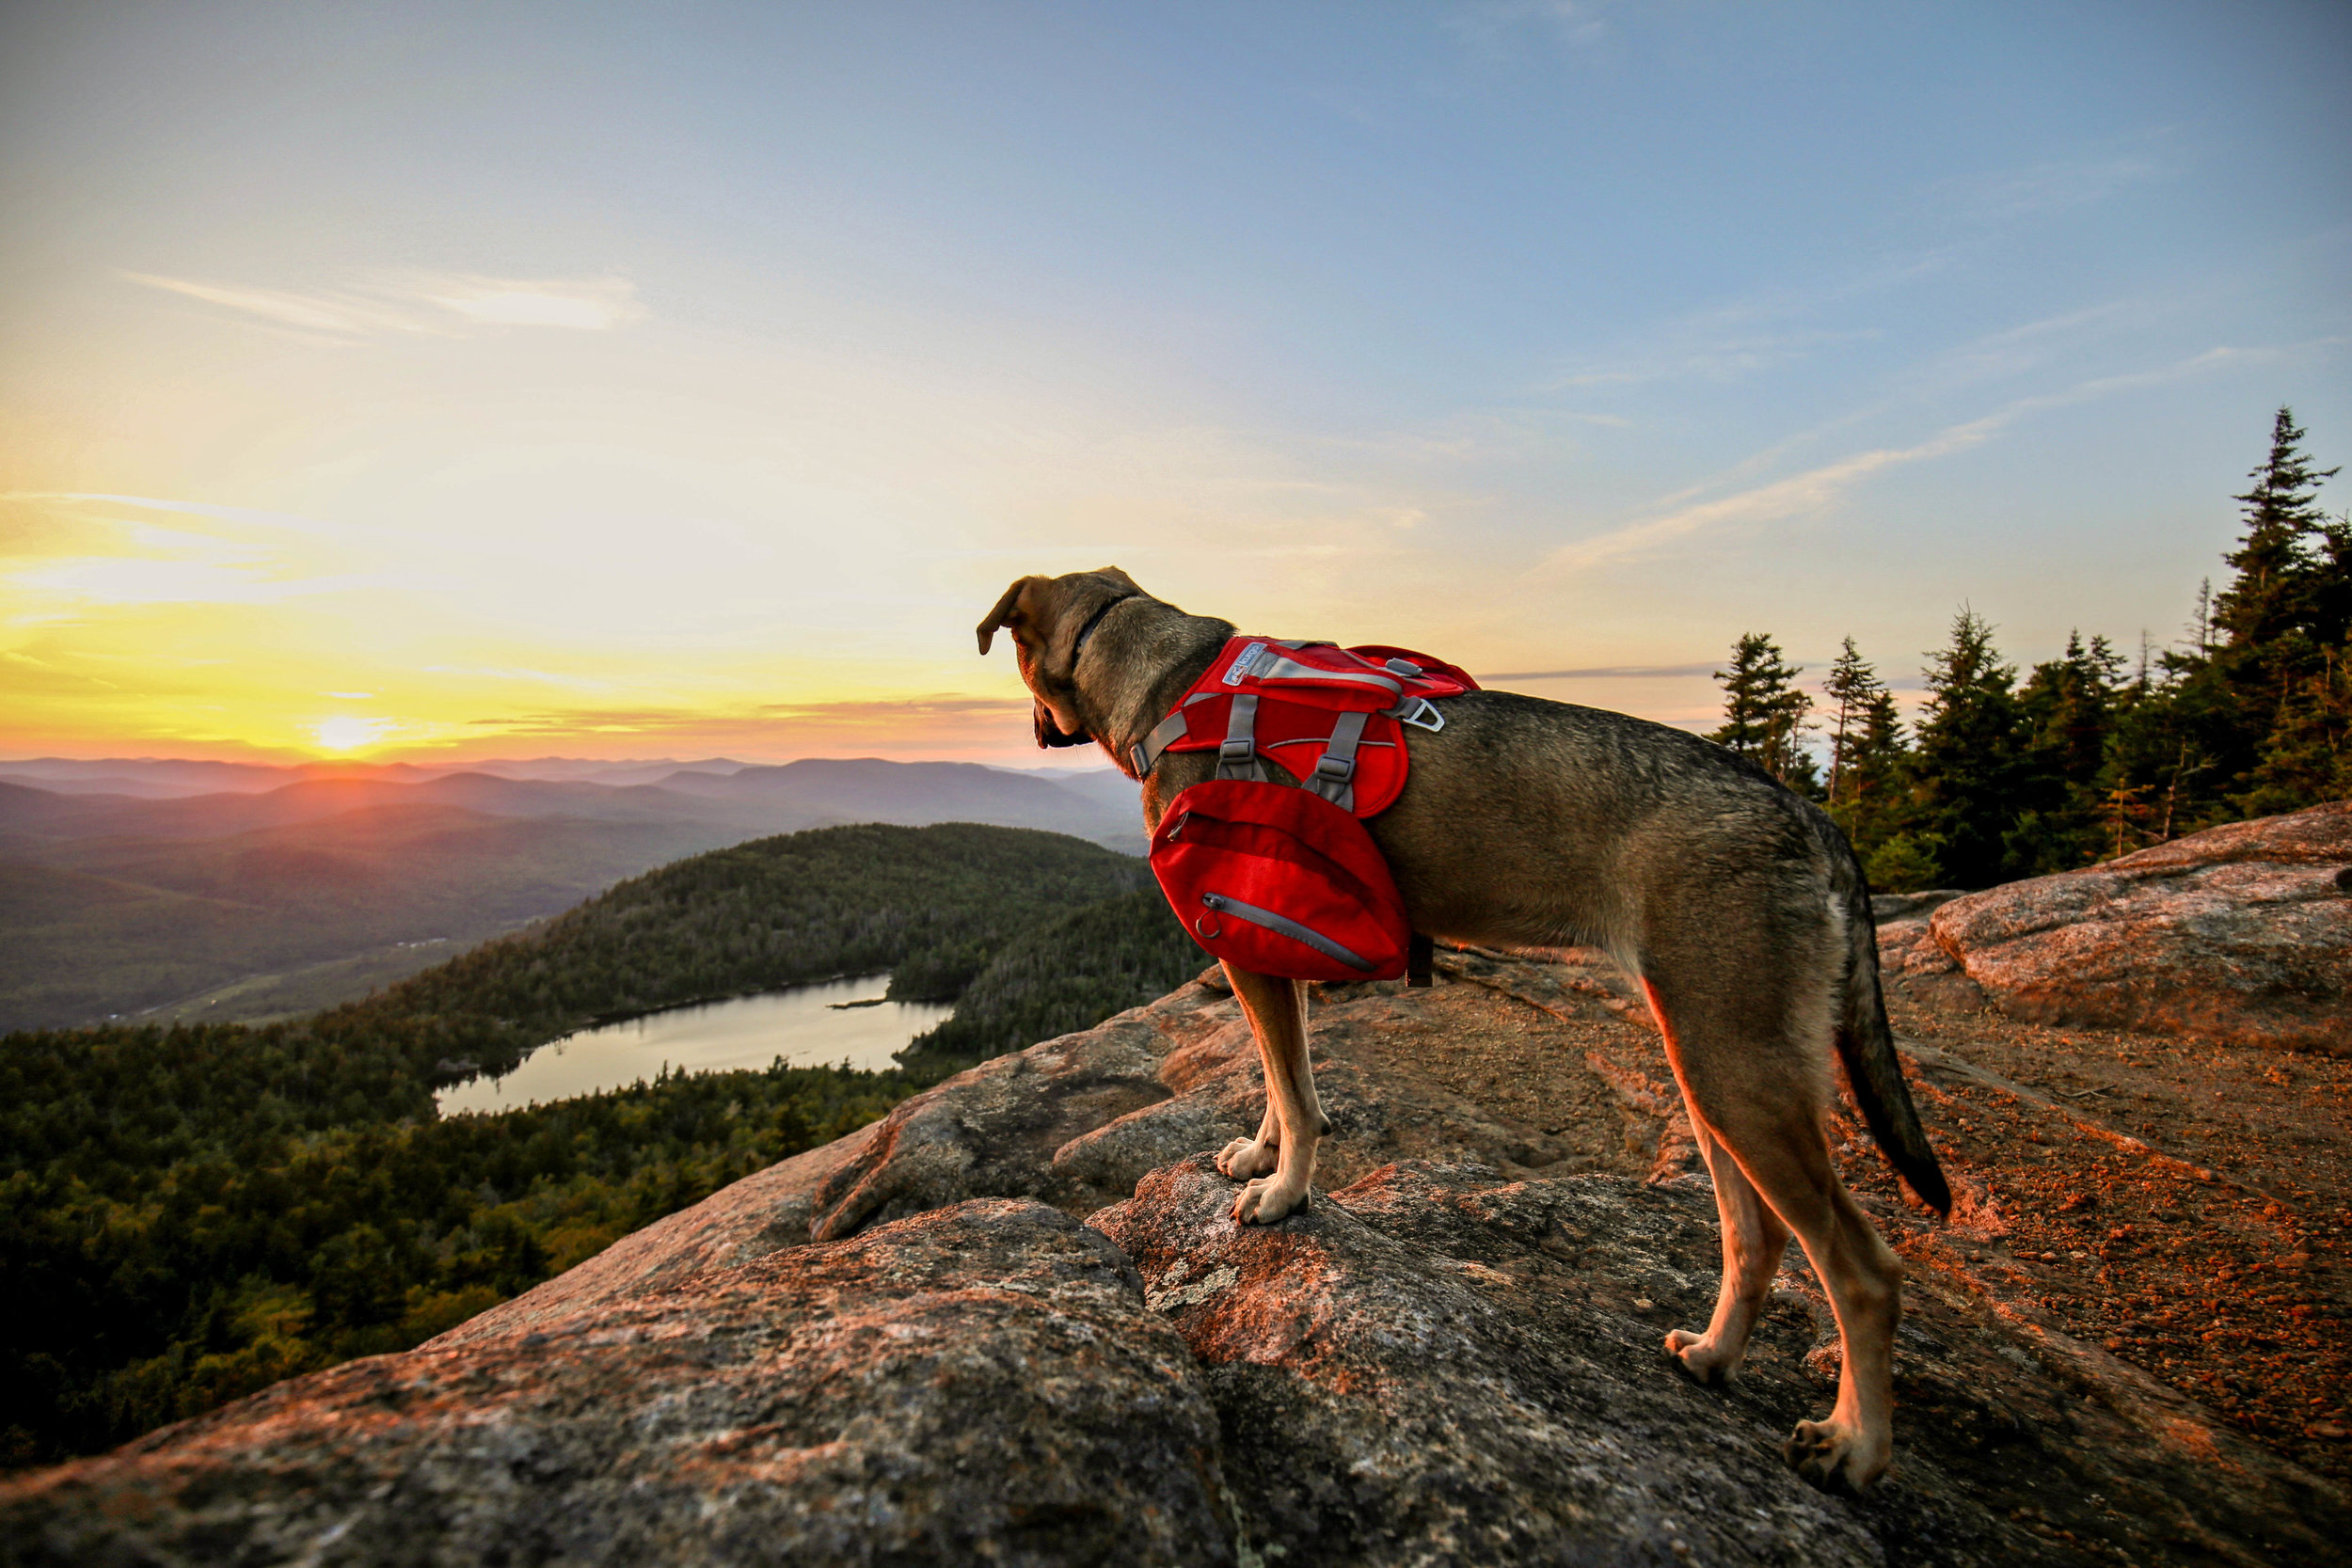 Evan & Hilary's ADK-9 Lucy has her own Insta! Follow her adventures  here .